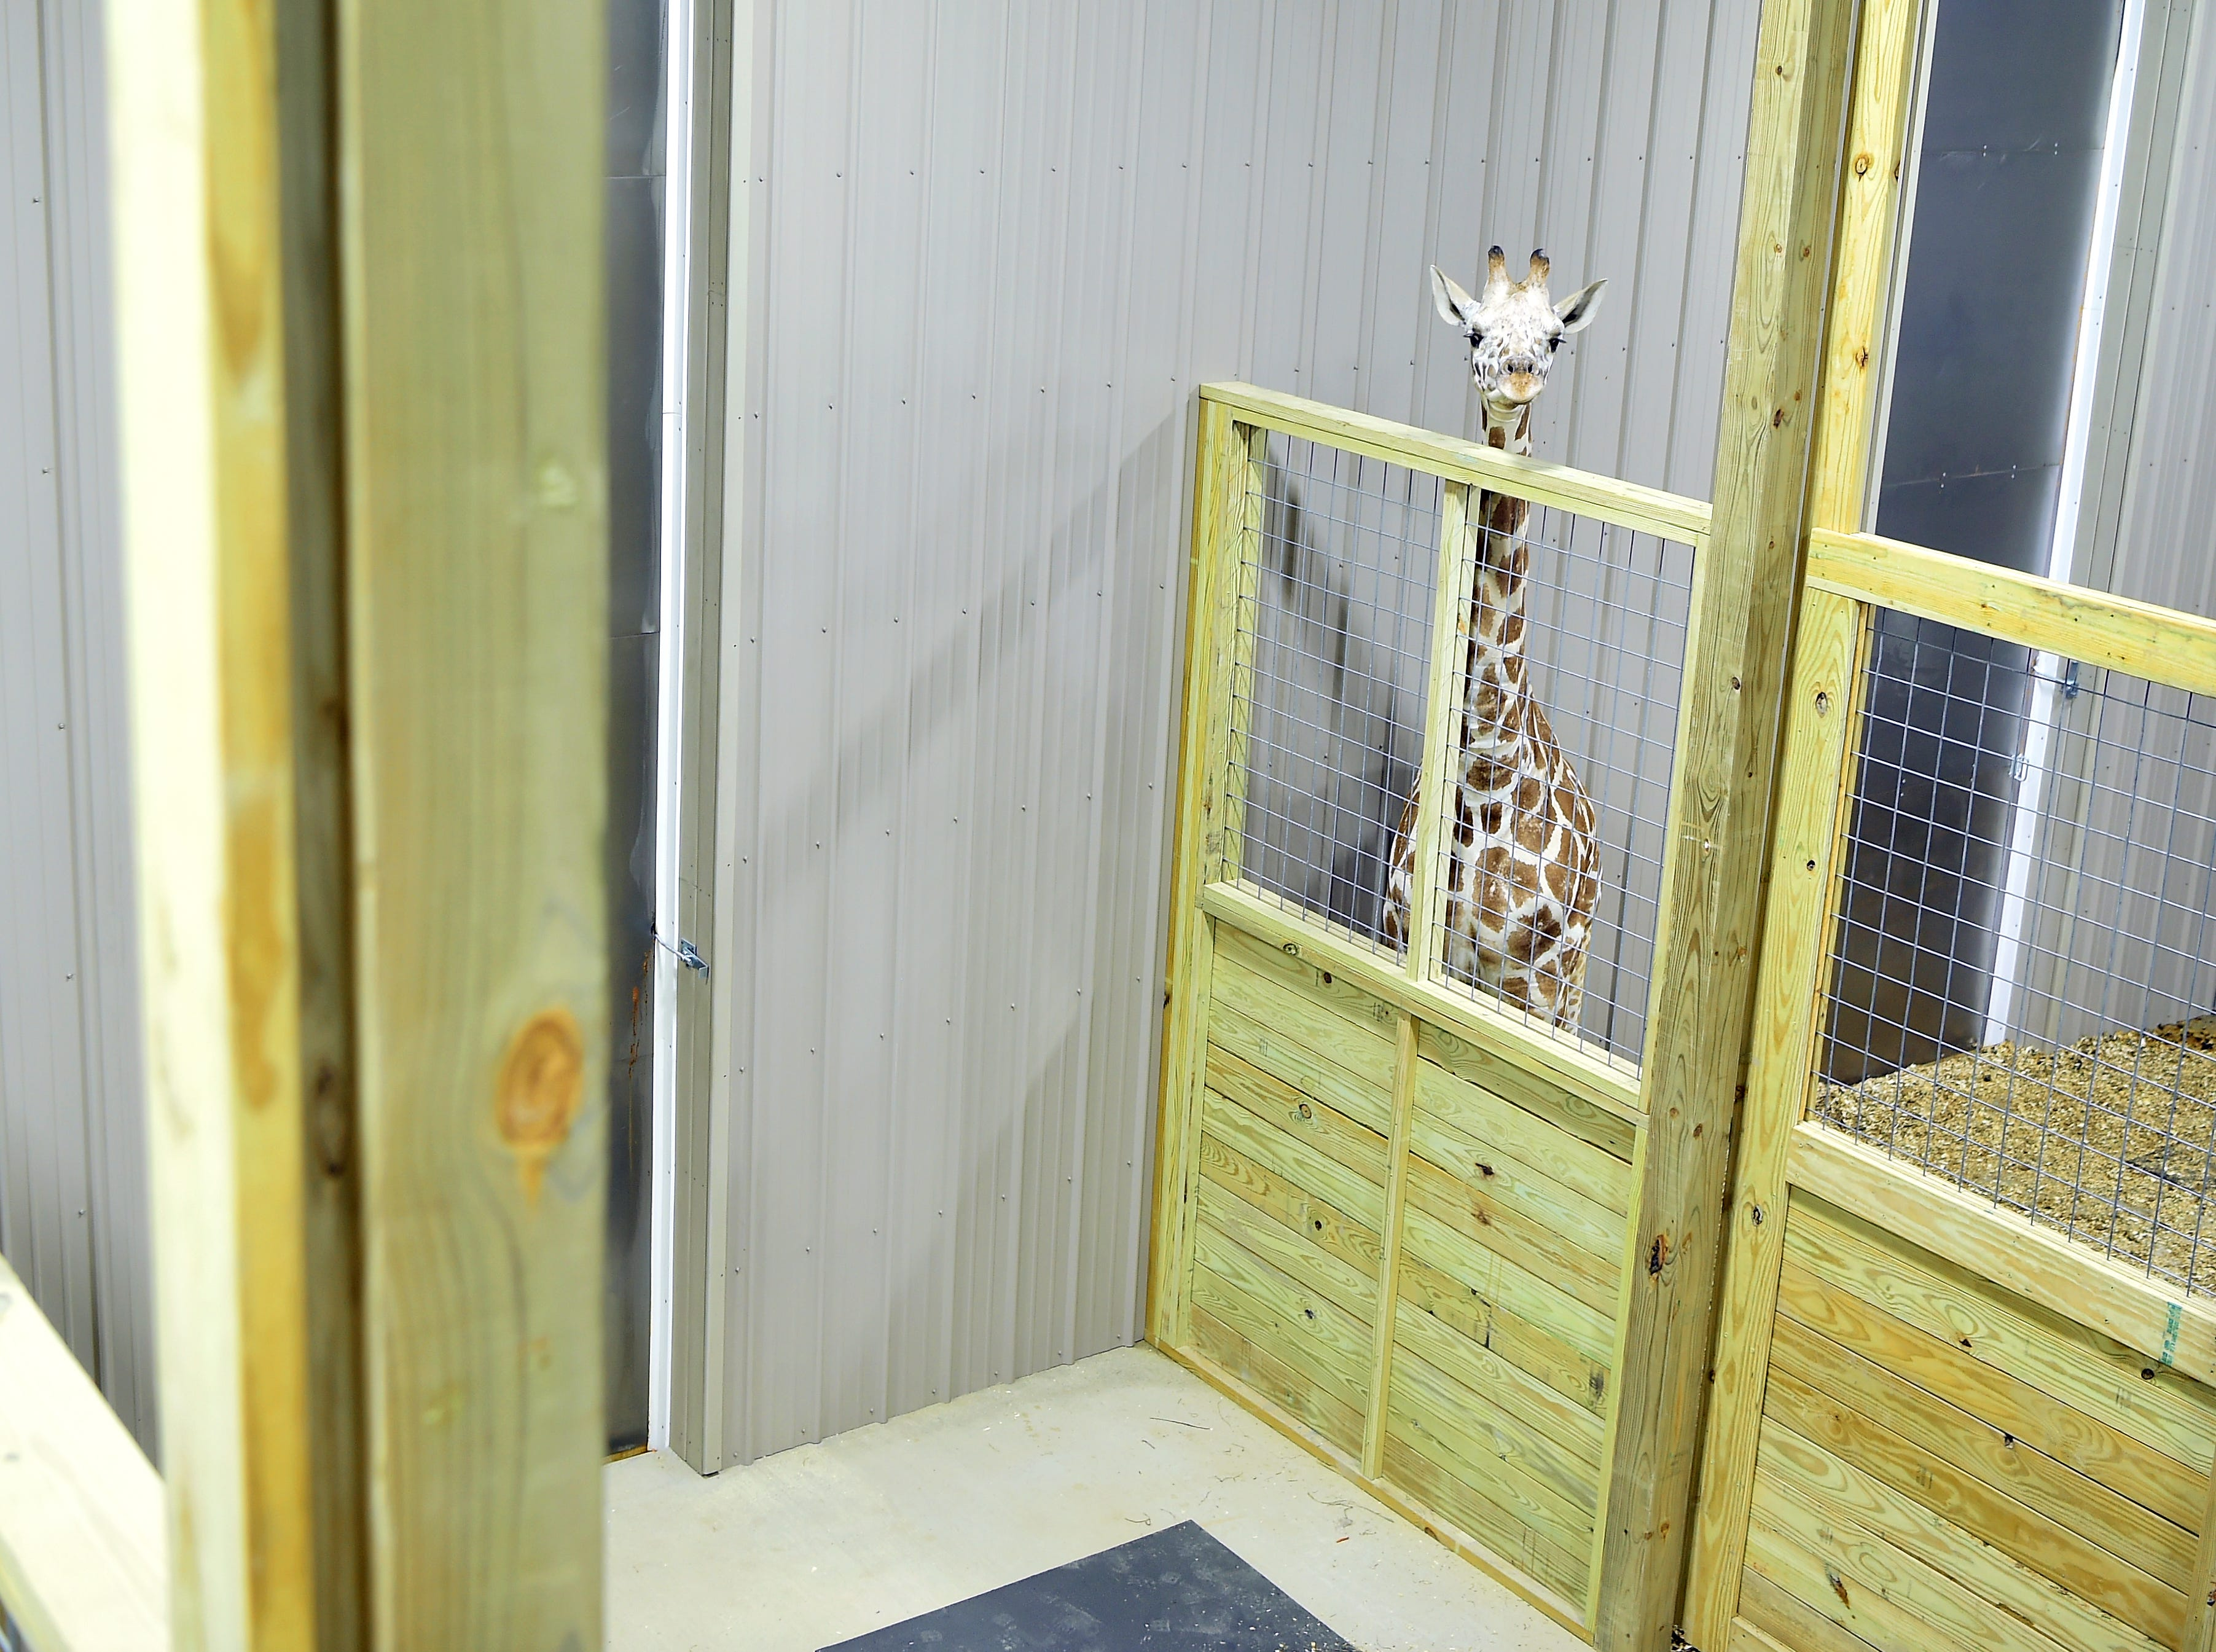 April The Giraffe's son Tajiri was recently moved into a new barn at Animal Adventure Park in Harpursville. December 4, 2018.